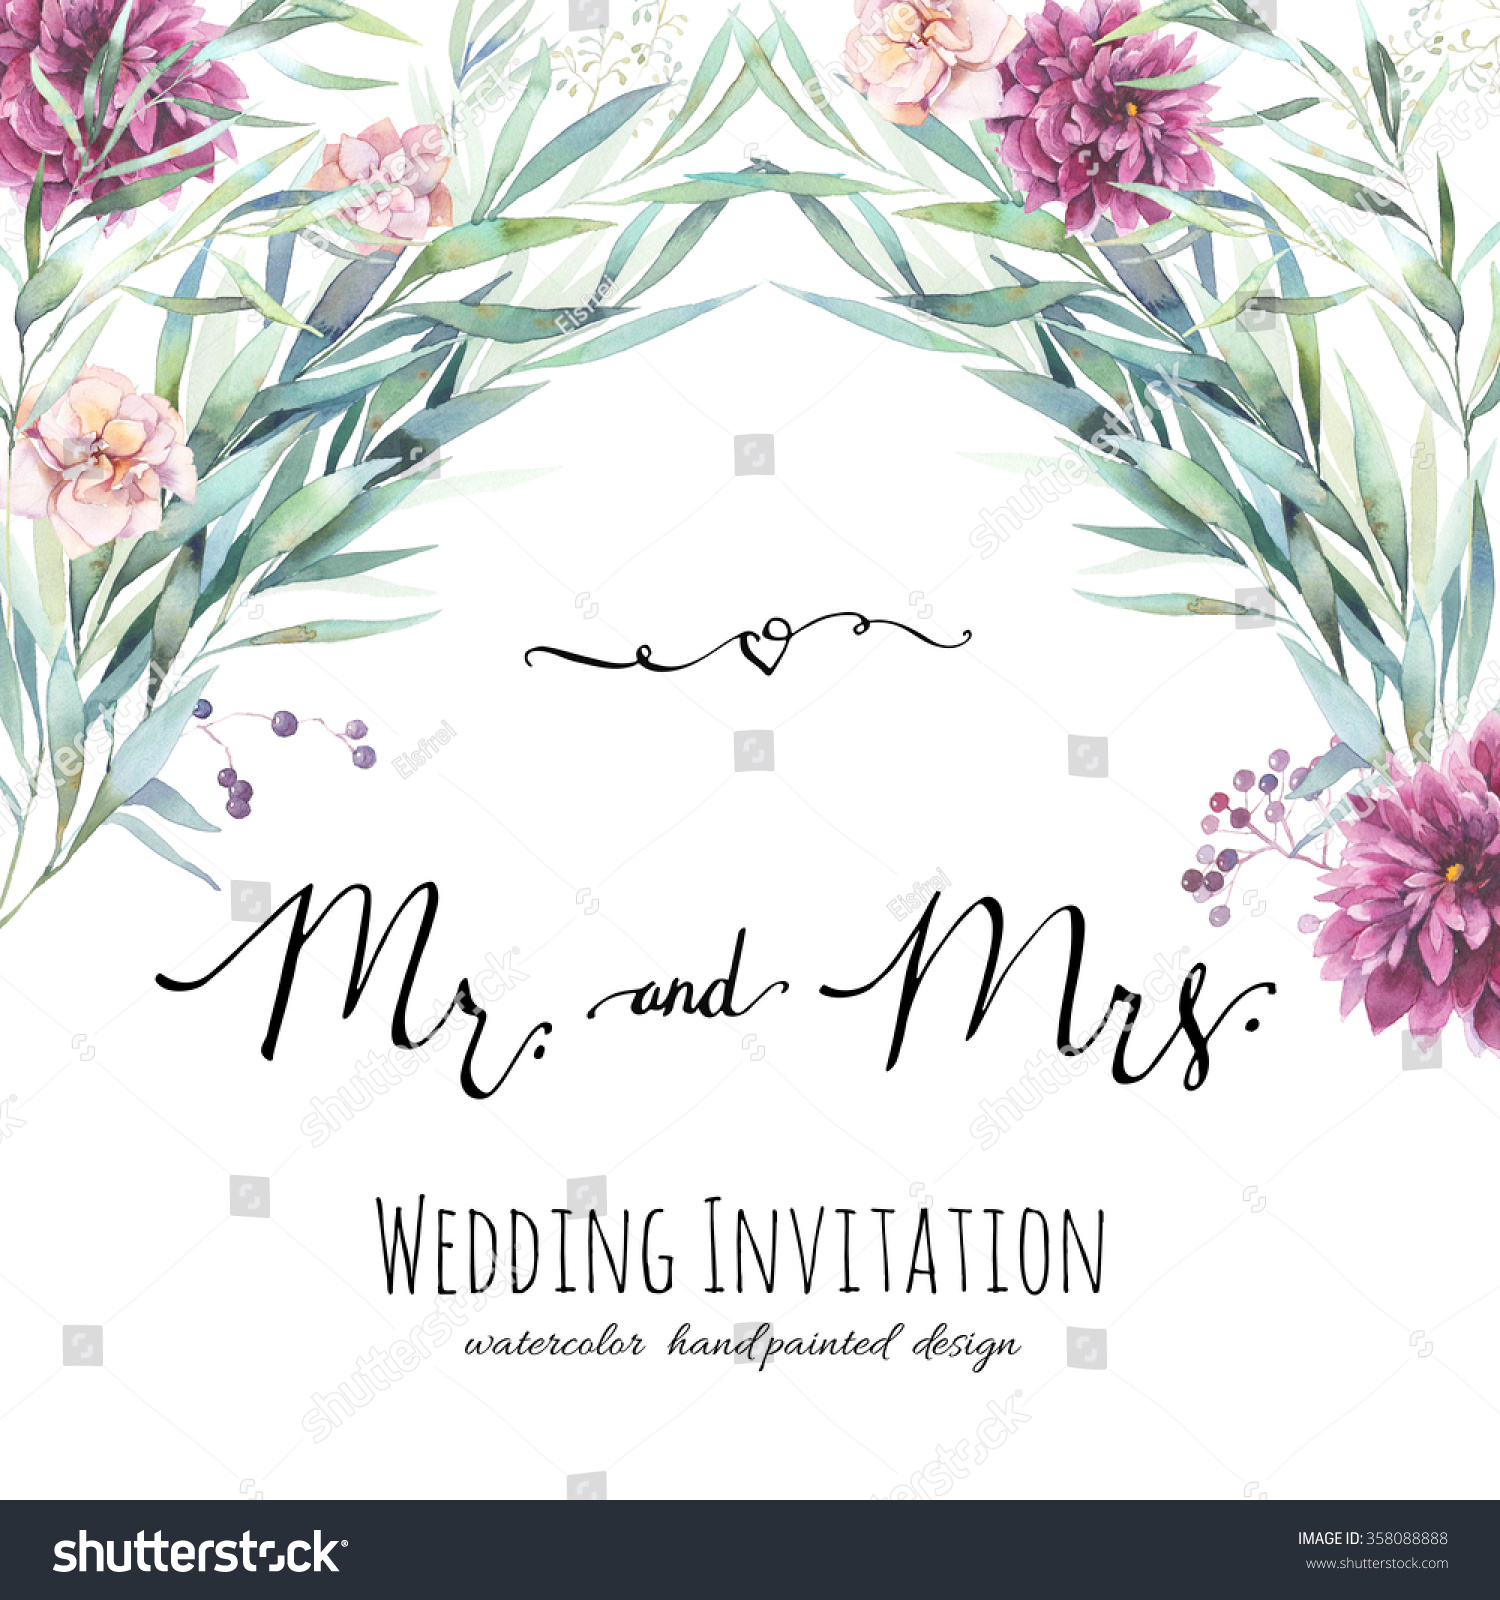 Watercolor Wedding Invitation Modern Calligraphy Words